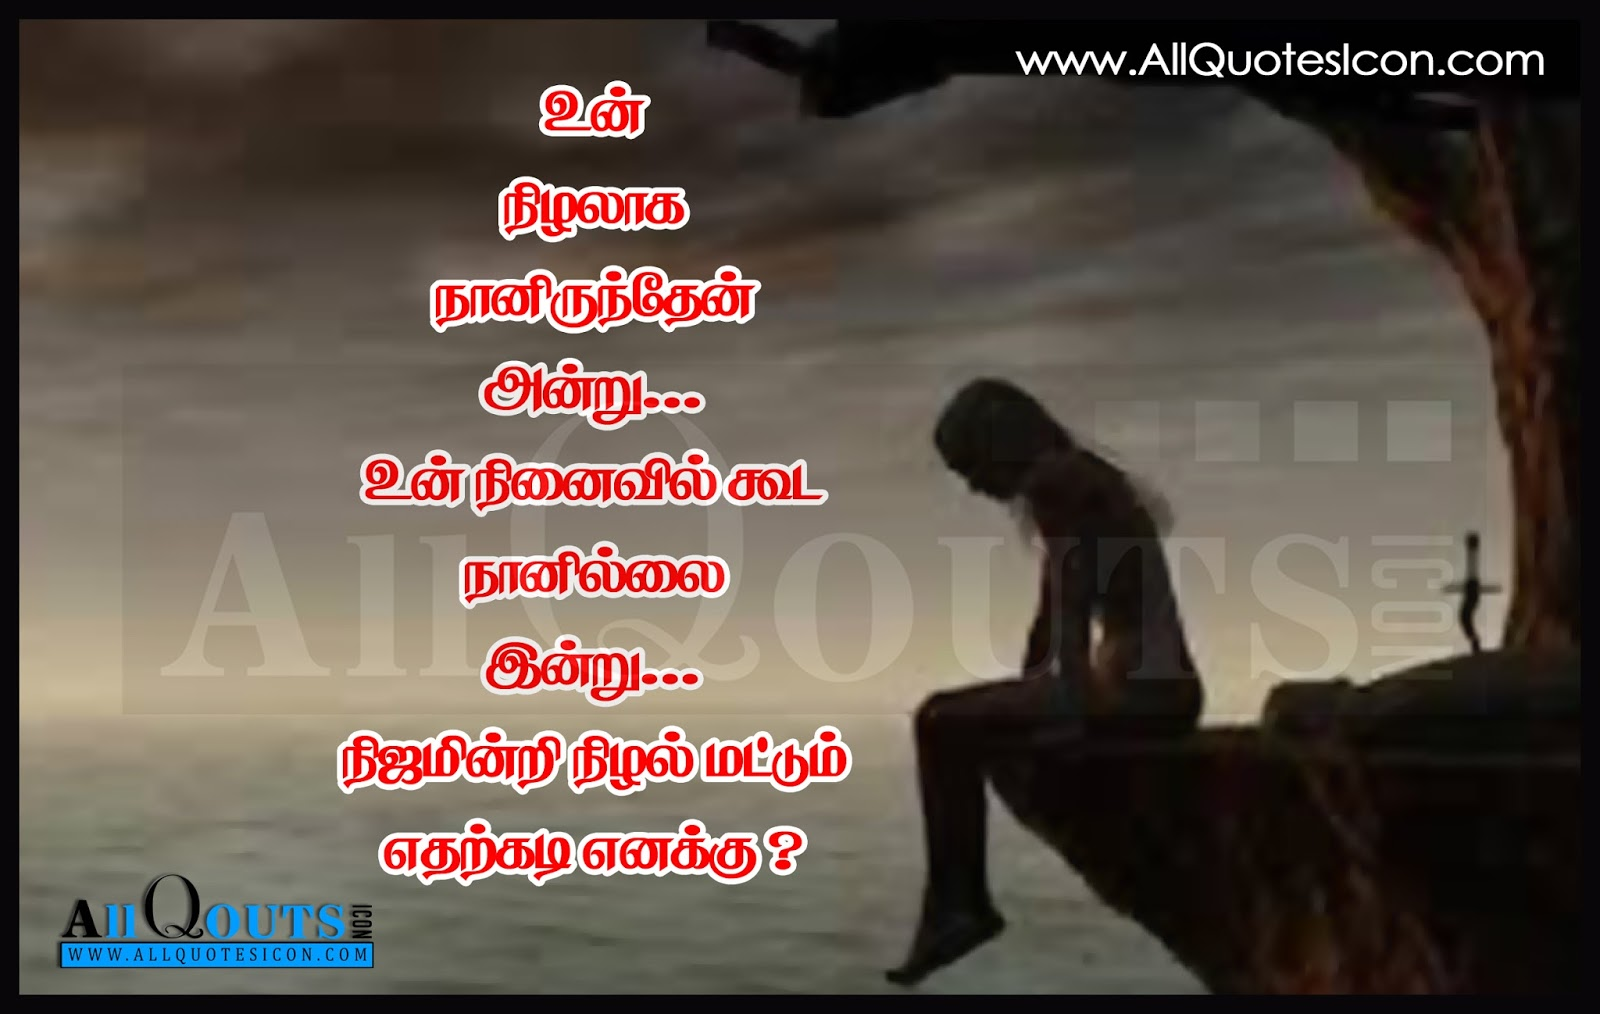 Tamil Love Quotes Images Motivation Inspiration Thoughts - Love Motivation Quotes In Tamil - HD Wallpaper